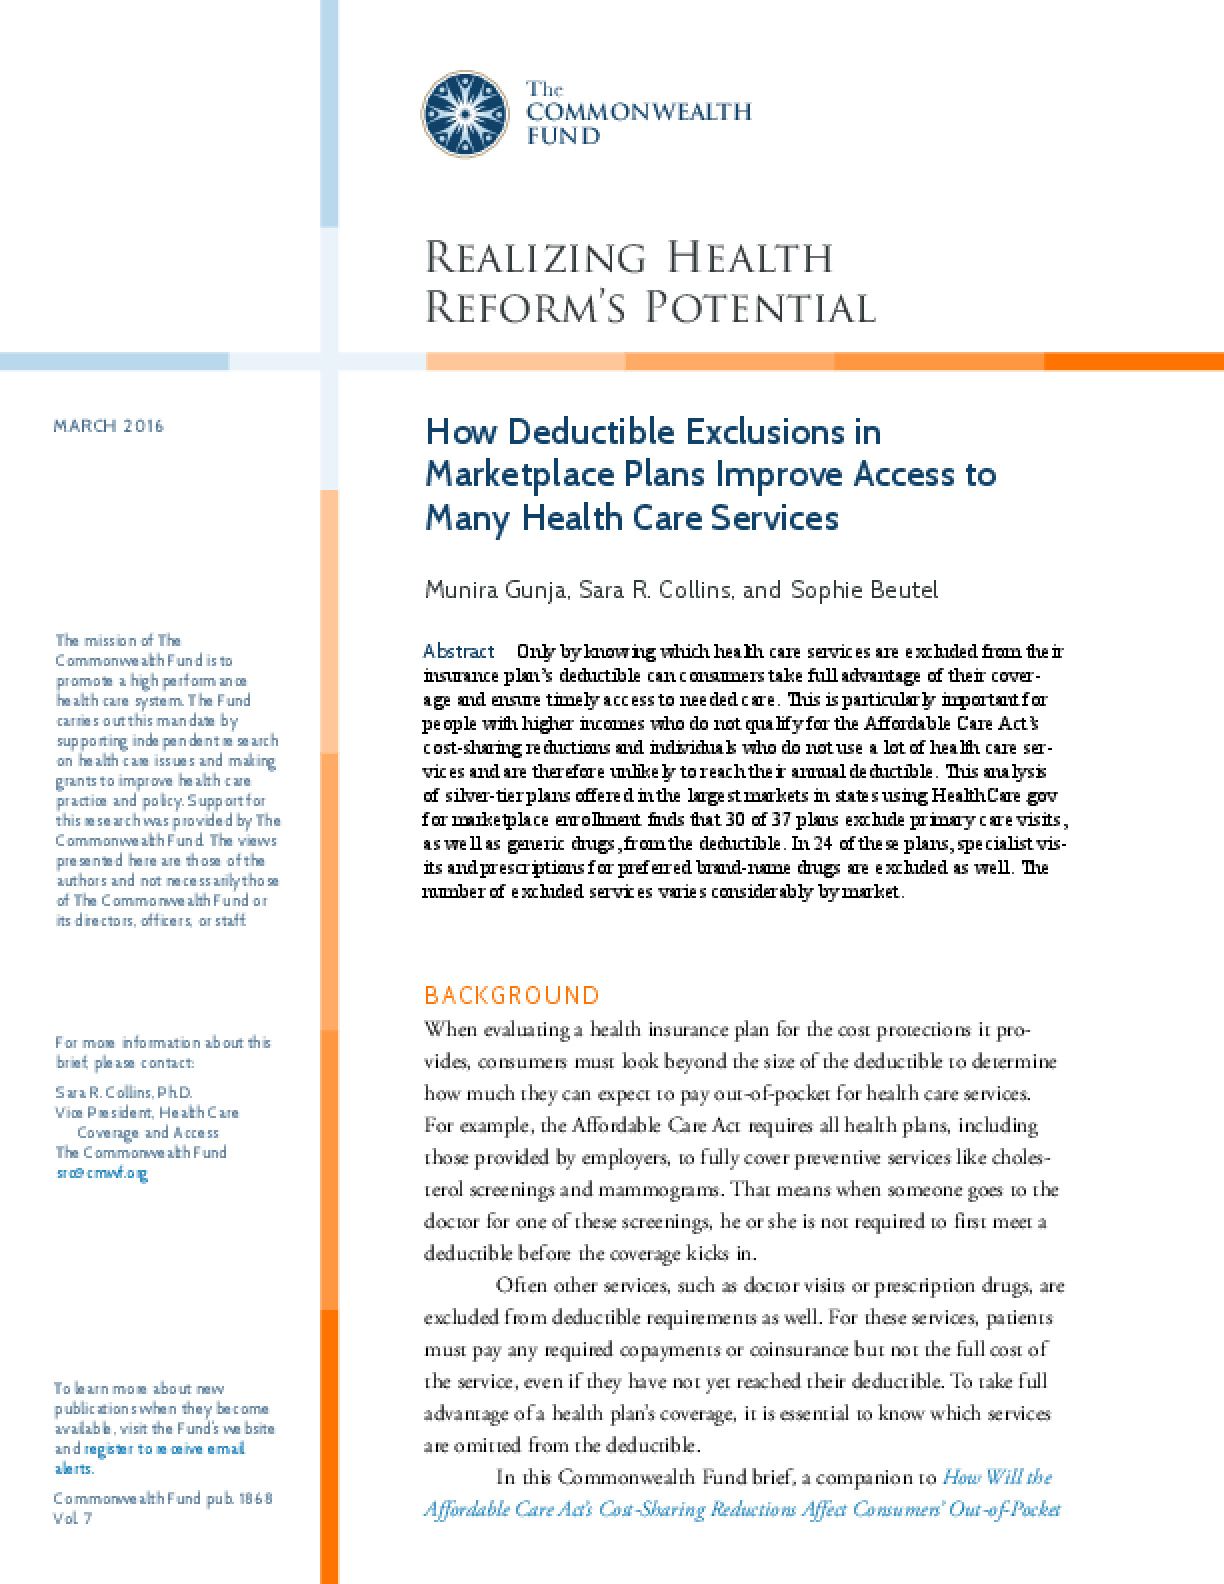 How Deductible Exclusions in Marketplace Plans Improve Access to Many Health Care Services